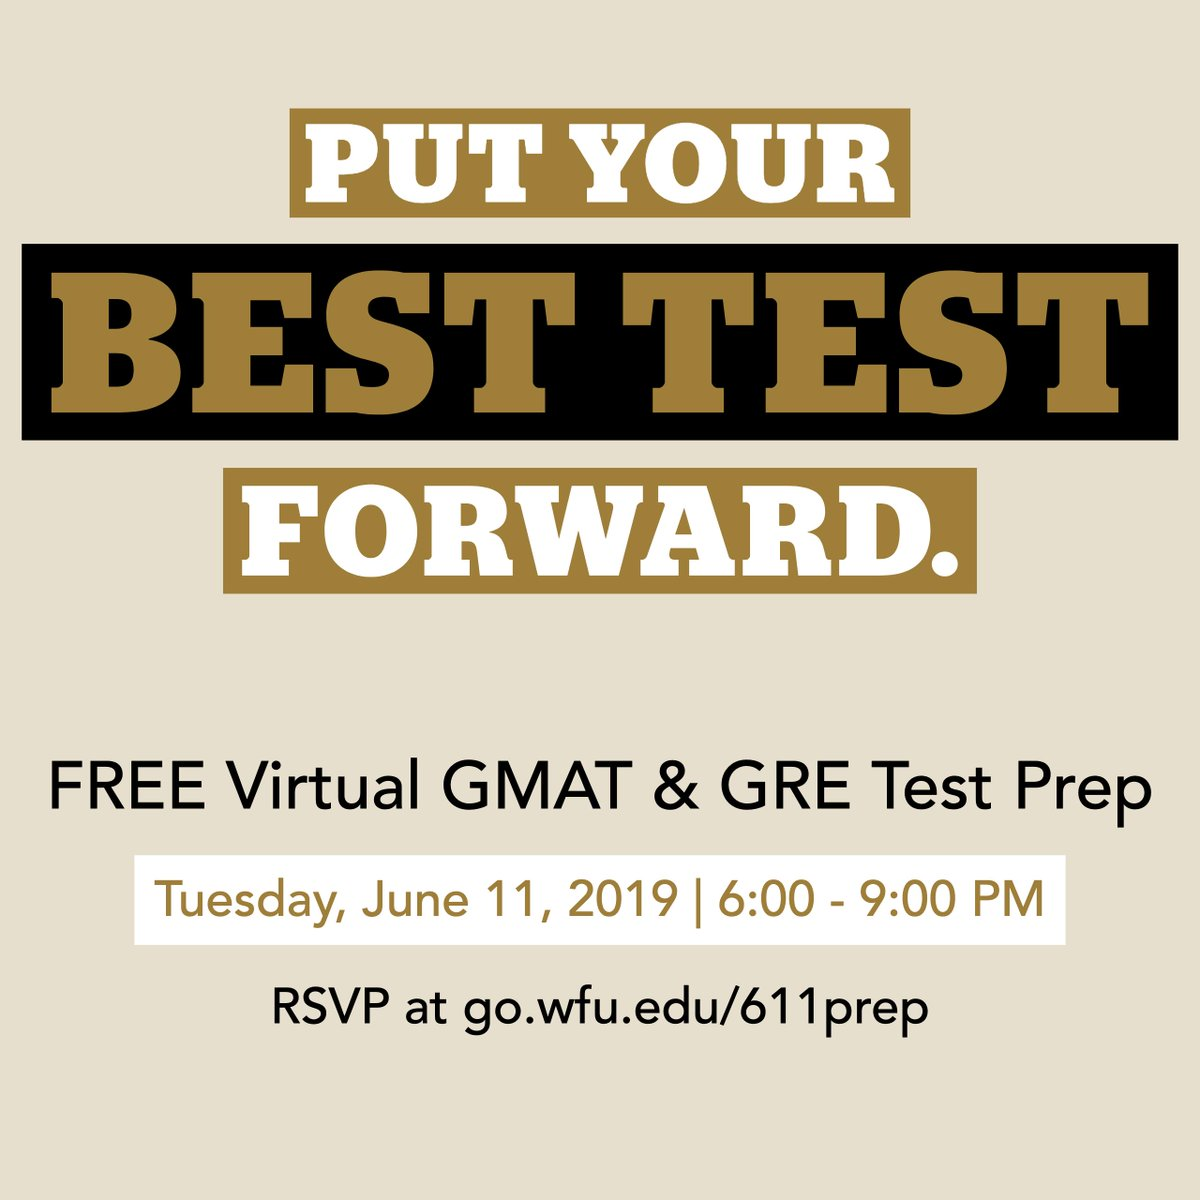 Tomorrow evening the School of Business is hosting a GRE and GMAT prep session webinar - and it's totally free to attend. RSVP at https://t.co/Xh3xbWSsER.